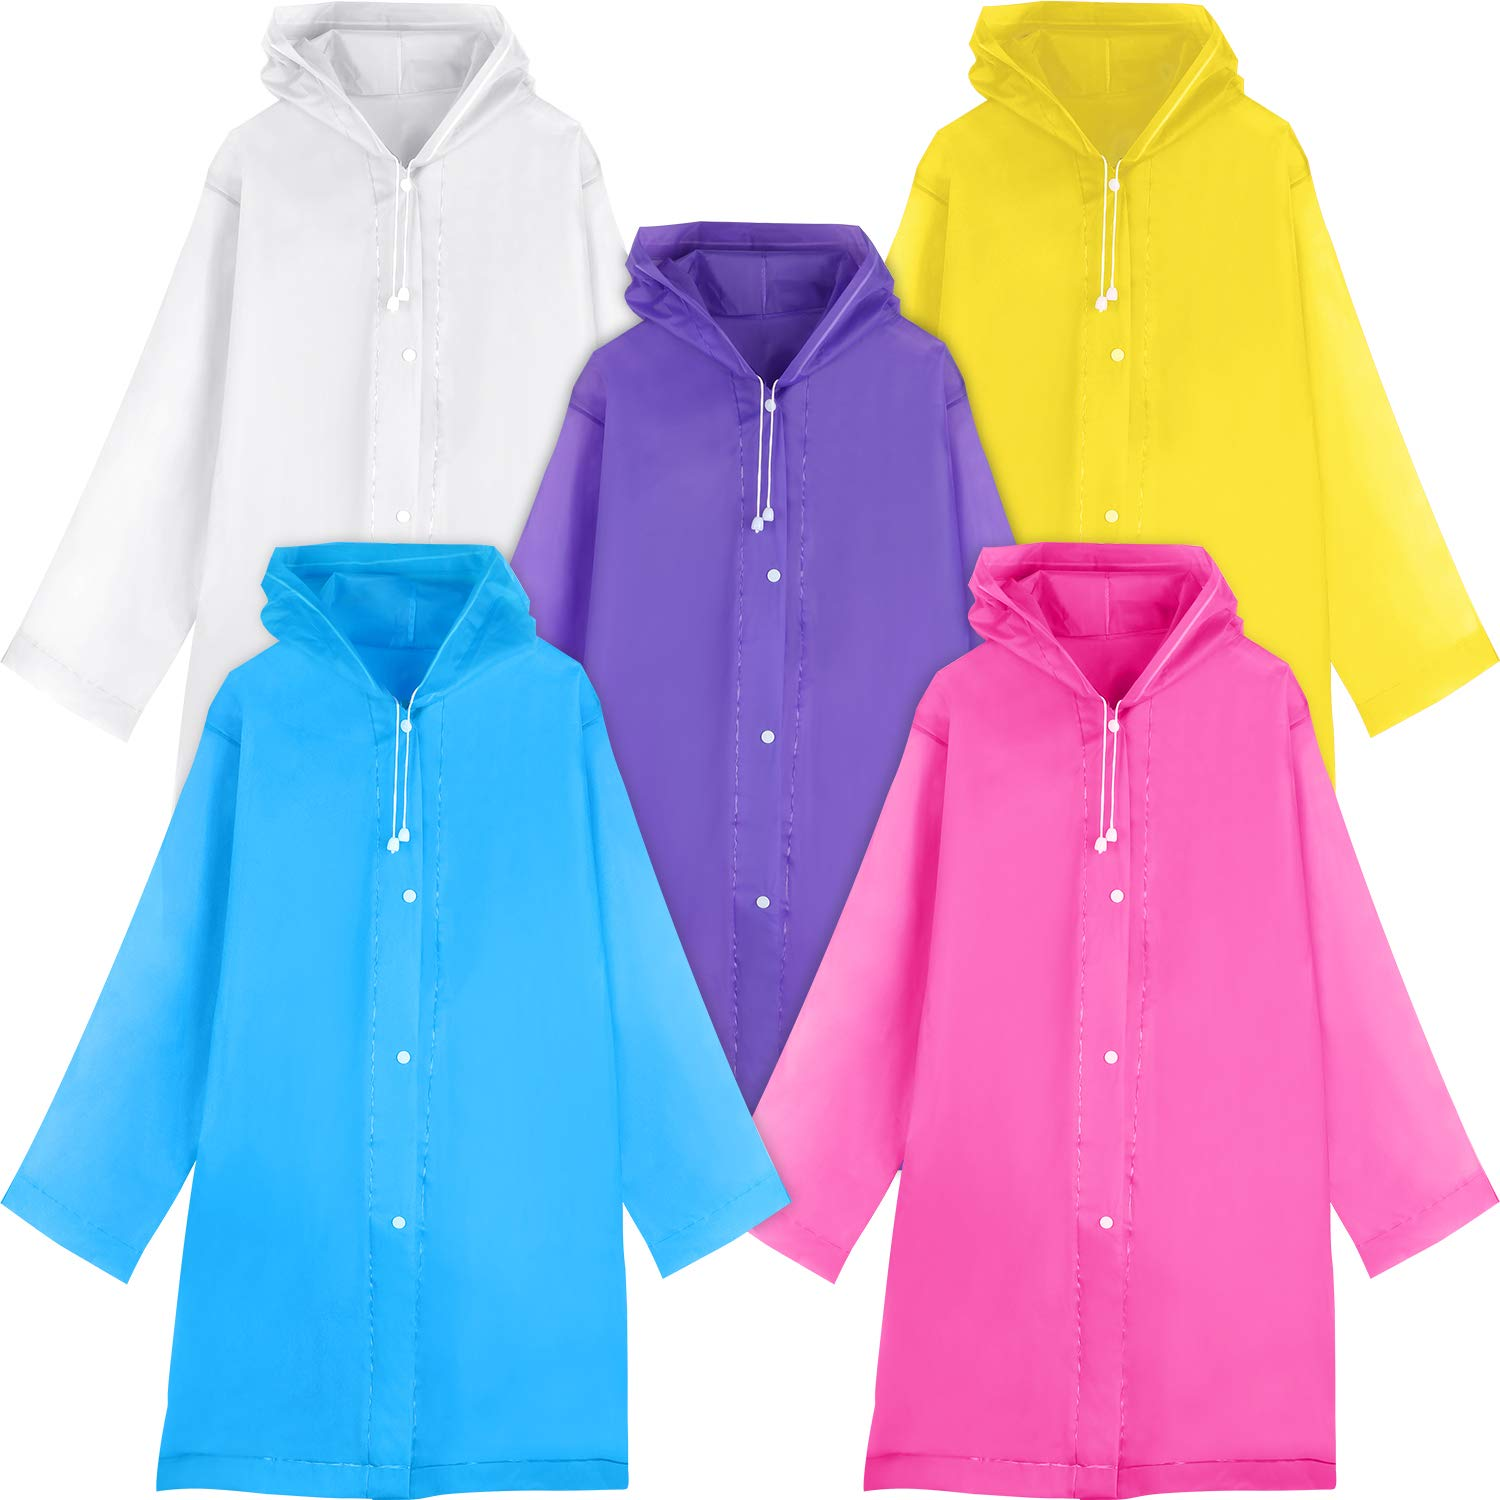 Syhood 5 Pieces Children Rain Poncho Portable Reusable Raincoats Rain Jacket for Outdoor Activities, for Kids 6-12 Year Old by Syhood